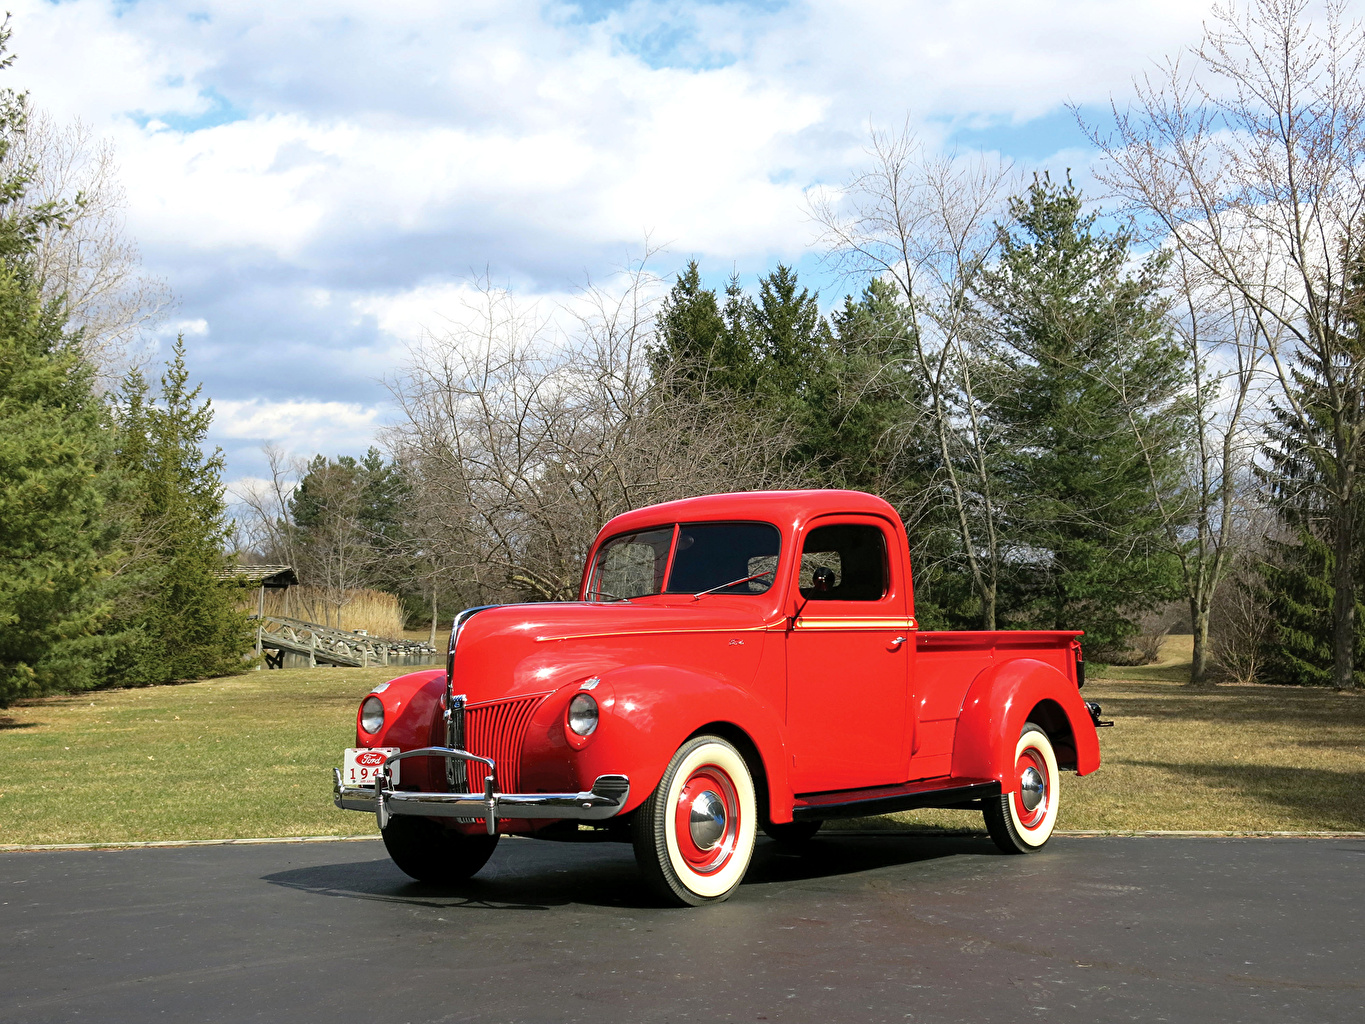 Photo Red Ford 1940 V8 Pickup Truck Cars vintage Metallic auto automobile Retro antique